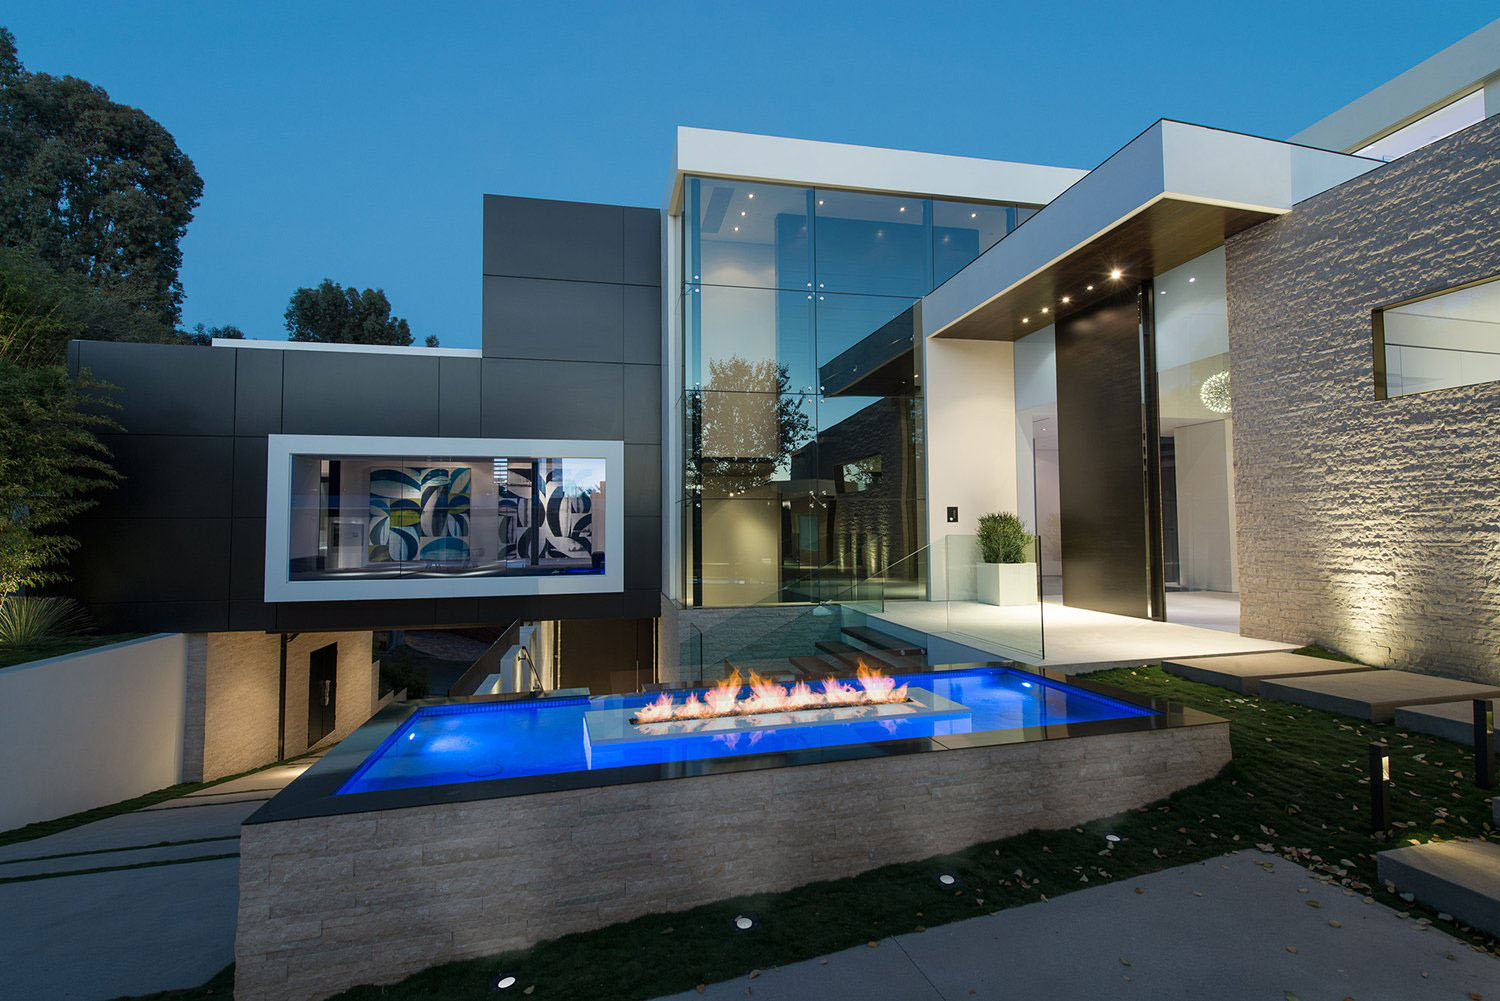 World class beverly hills contemporary luxury home with for Luxury home architect